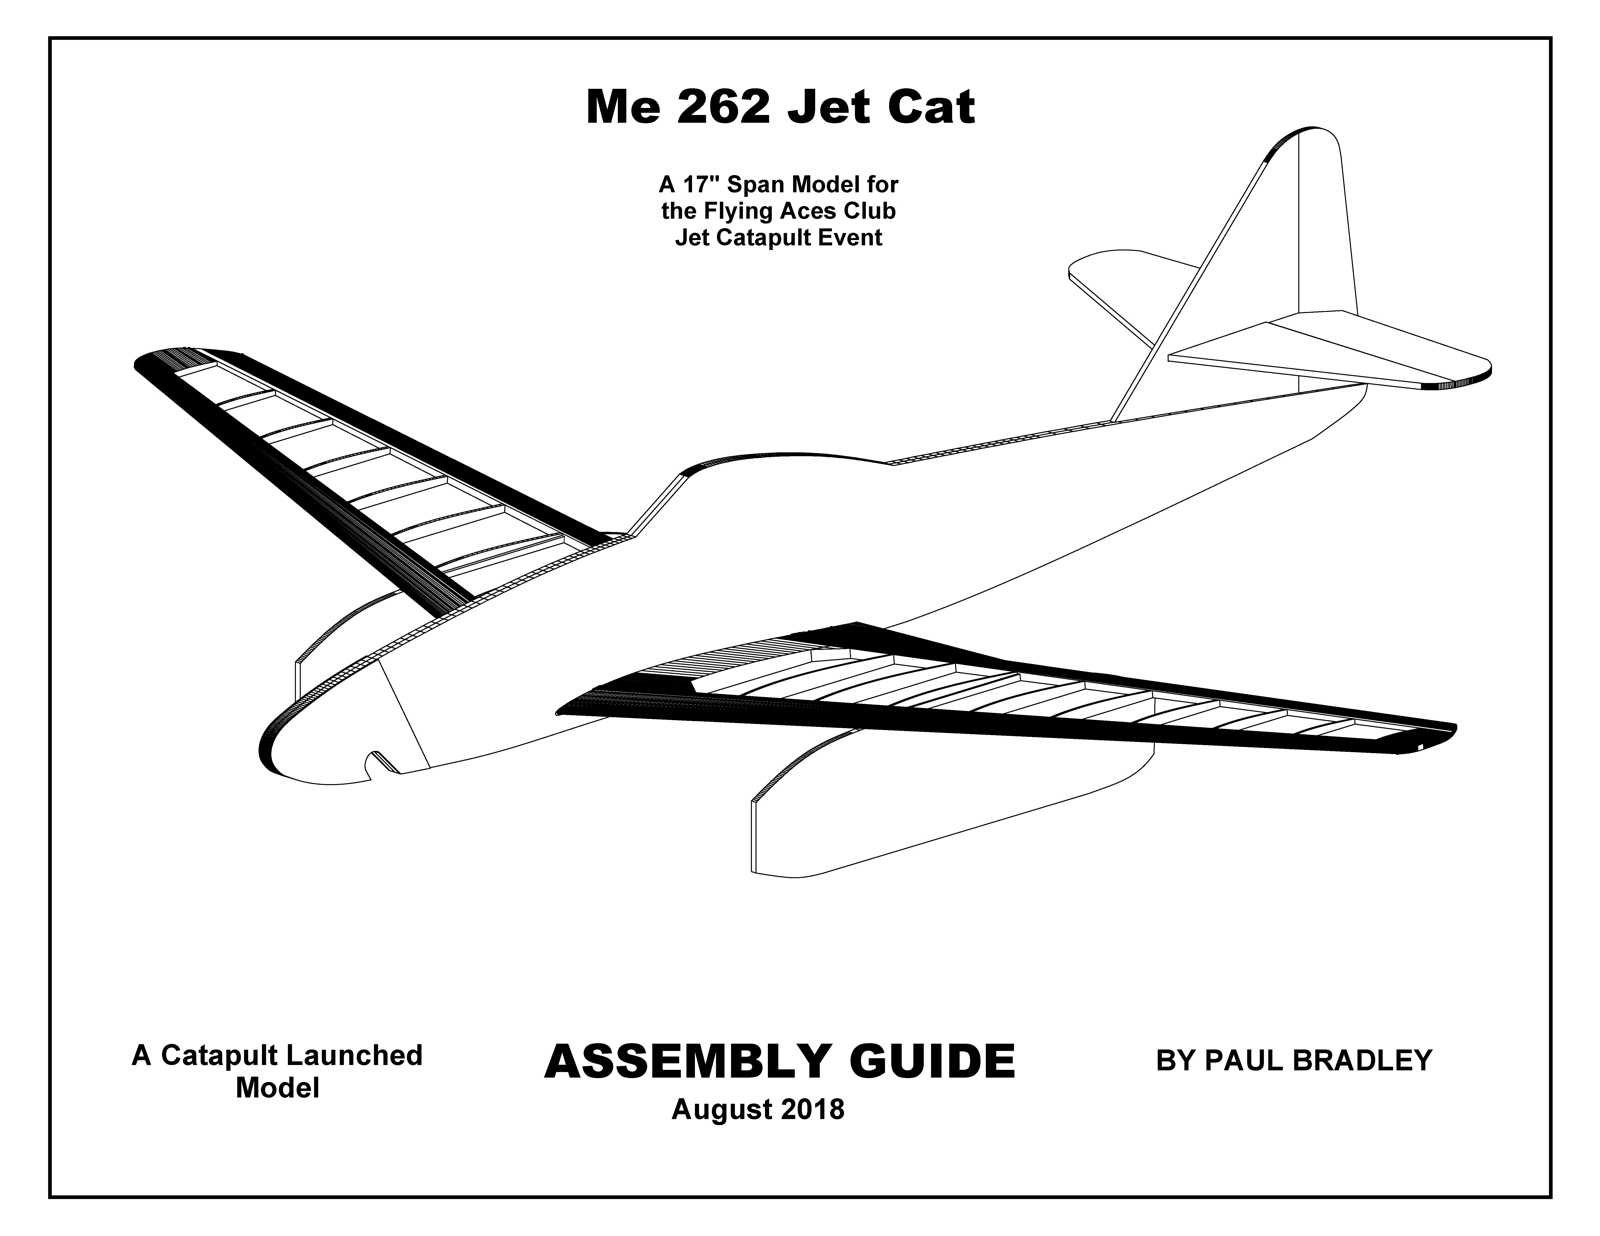 https://0201.nccdn.net/1_2/000/000/13a/704/Me-262-Jet-Cat-Assembly-Guide-page-1600x1236.jpg